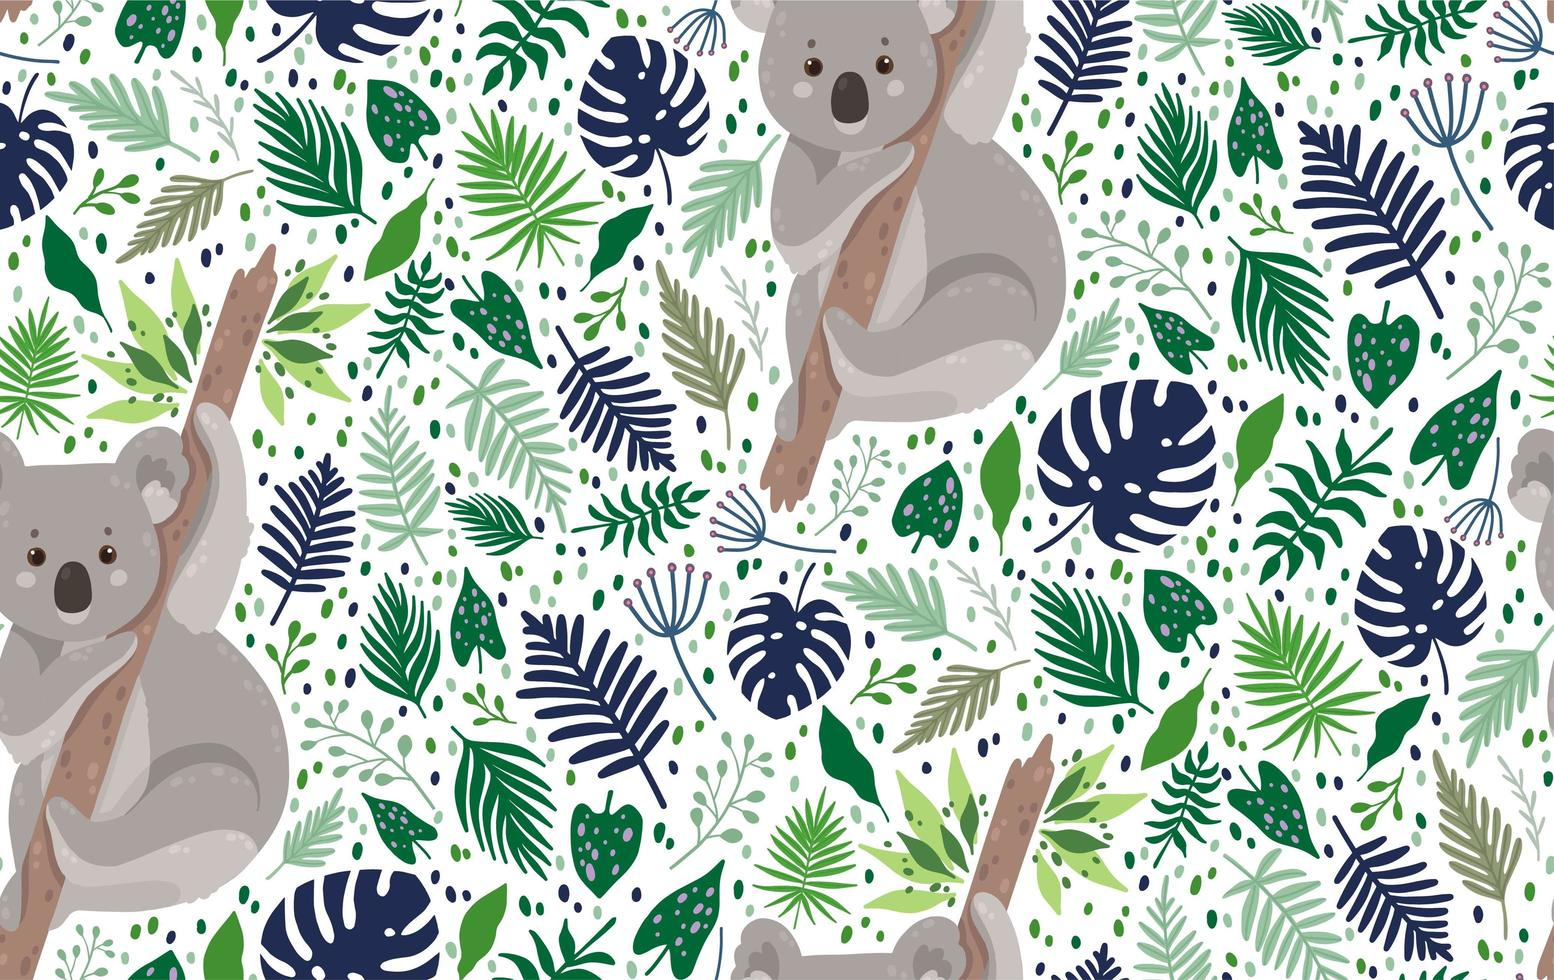 Cute koala surrounded by leaves seamless pattern vector